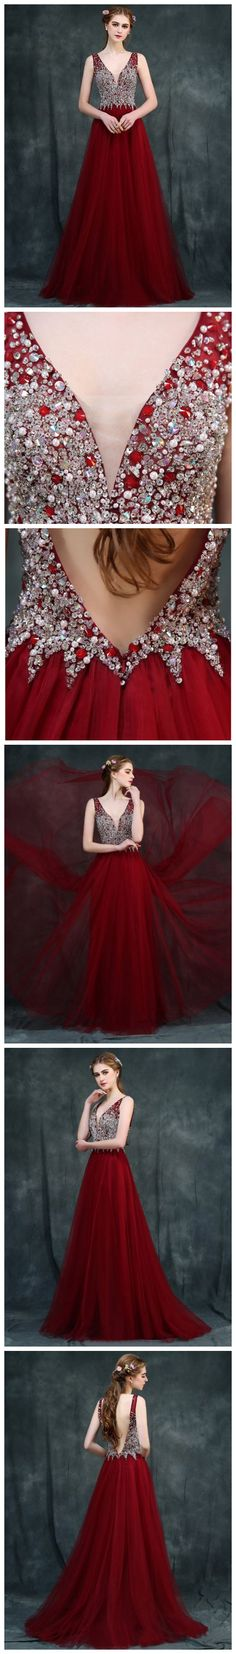 CHIC A-LINE V-NECK BURGUNDY TULLE RHINESTONE MODEST PROM DRESS EVENING DRESS AM491